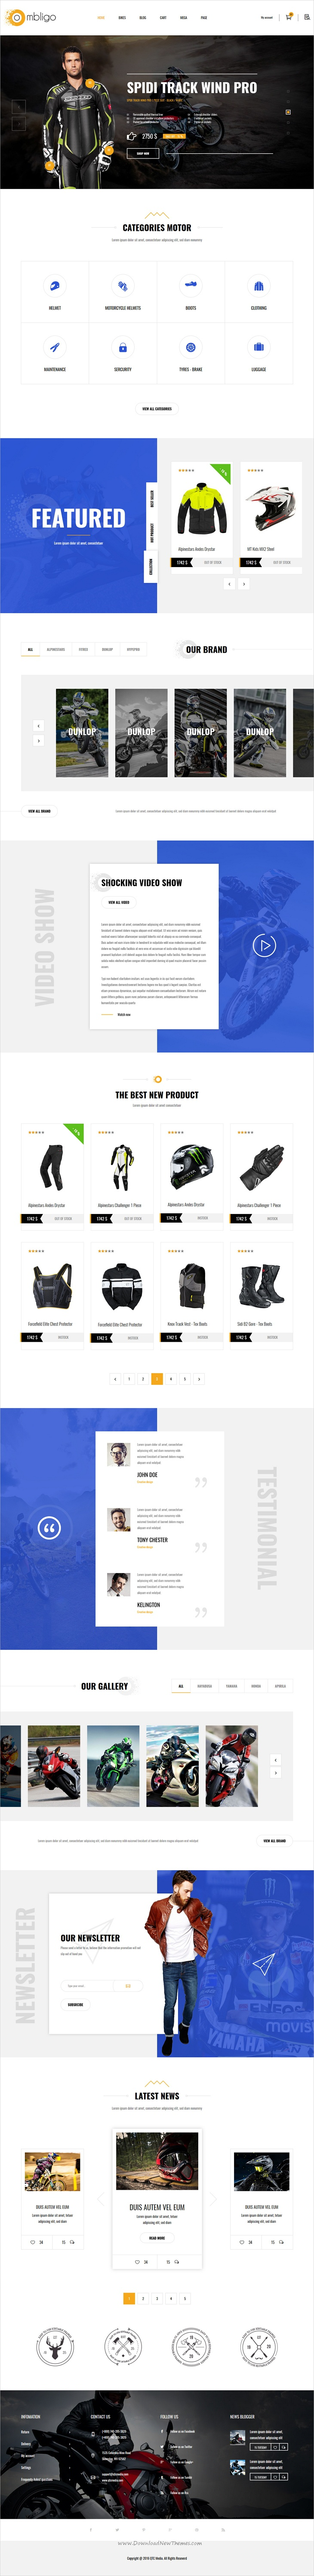 Ombligo is a dynamic and modern responsive bootstrap template for